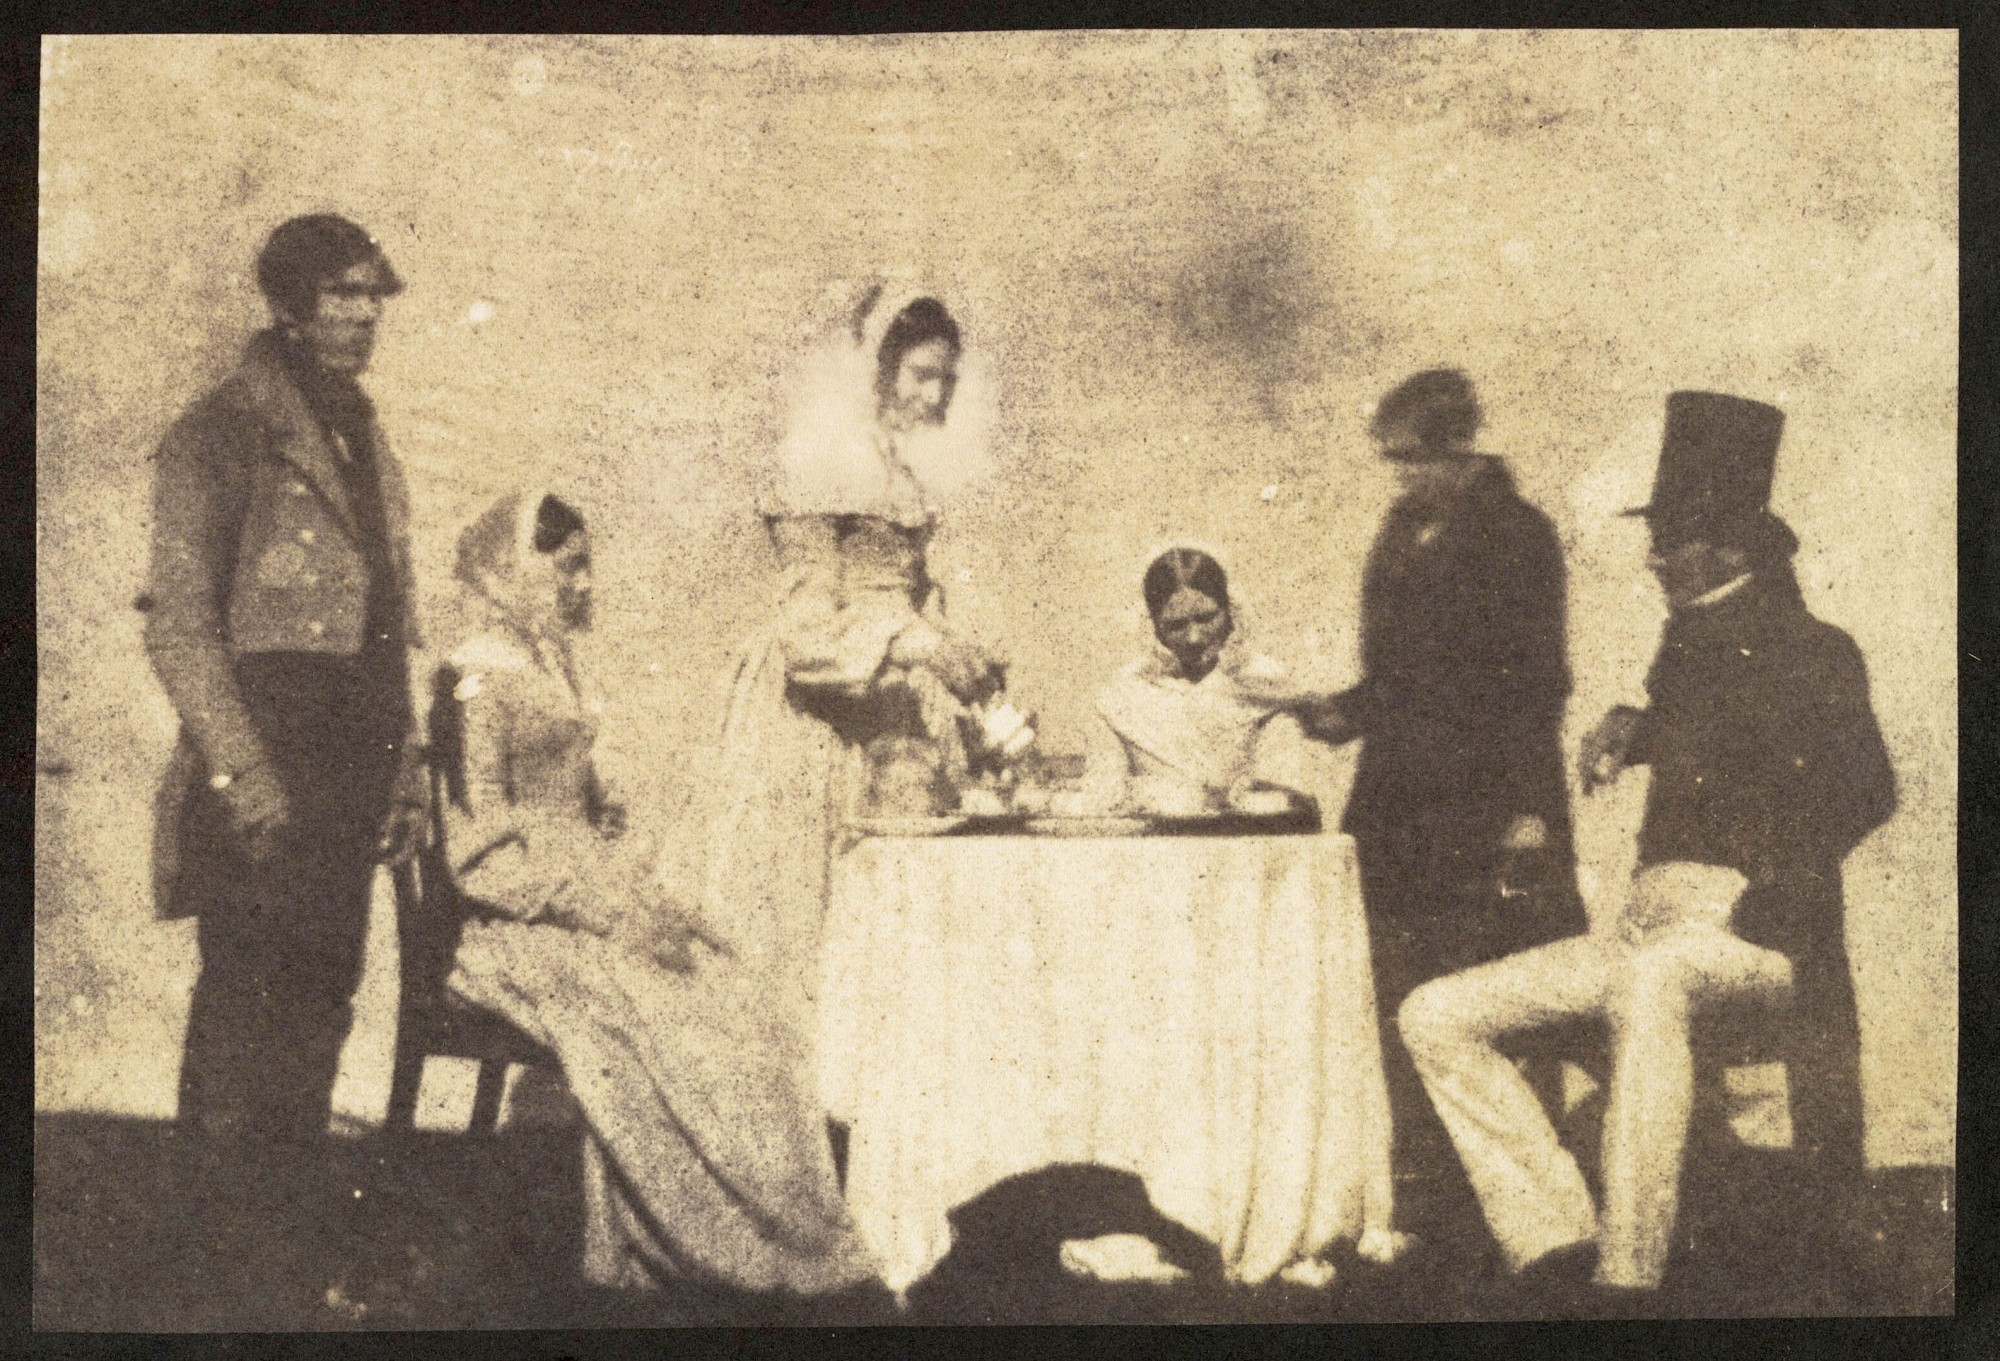 1843 'Group Taking Tea at Lacock Abbey', Wiltshire, William Fox Talbot, 1843